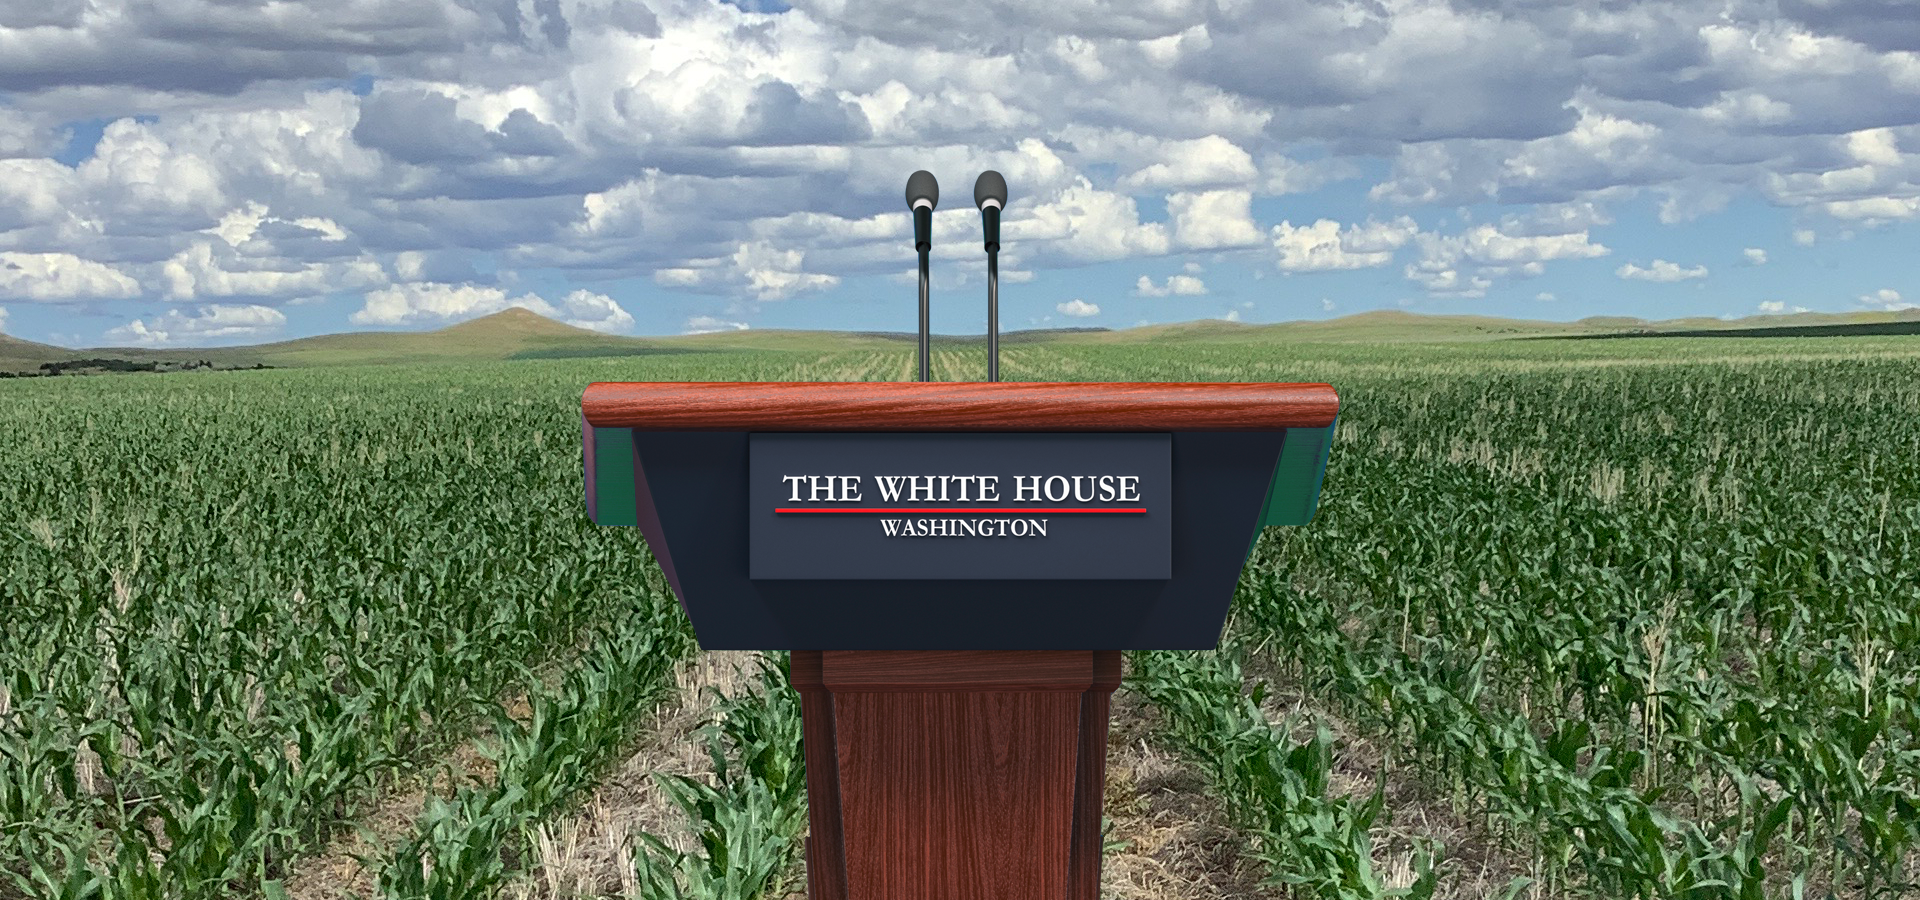 The White House Podium pictured in a field